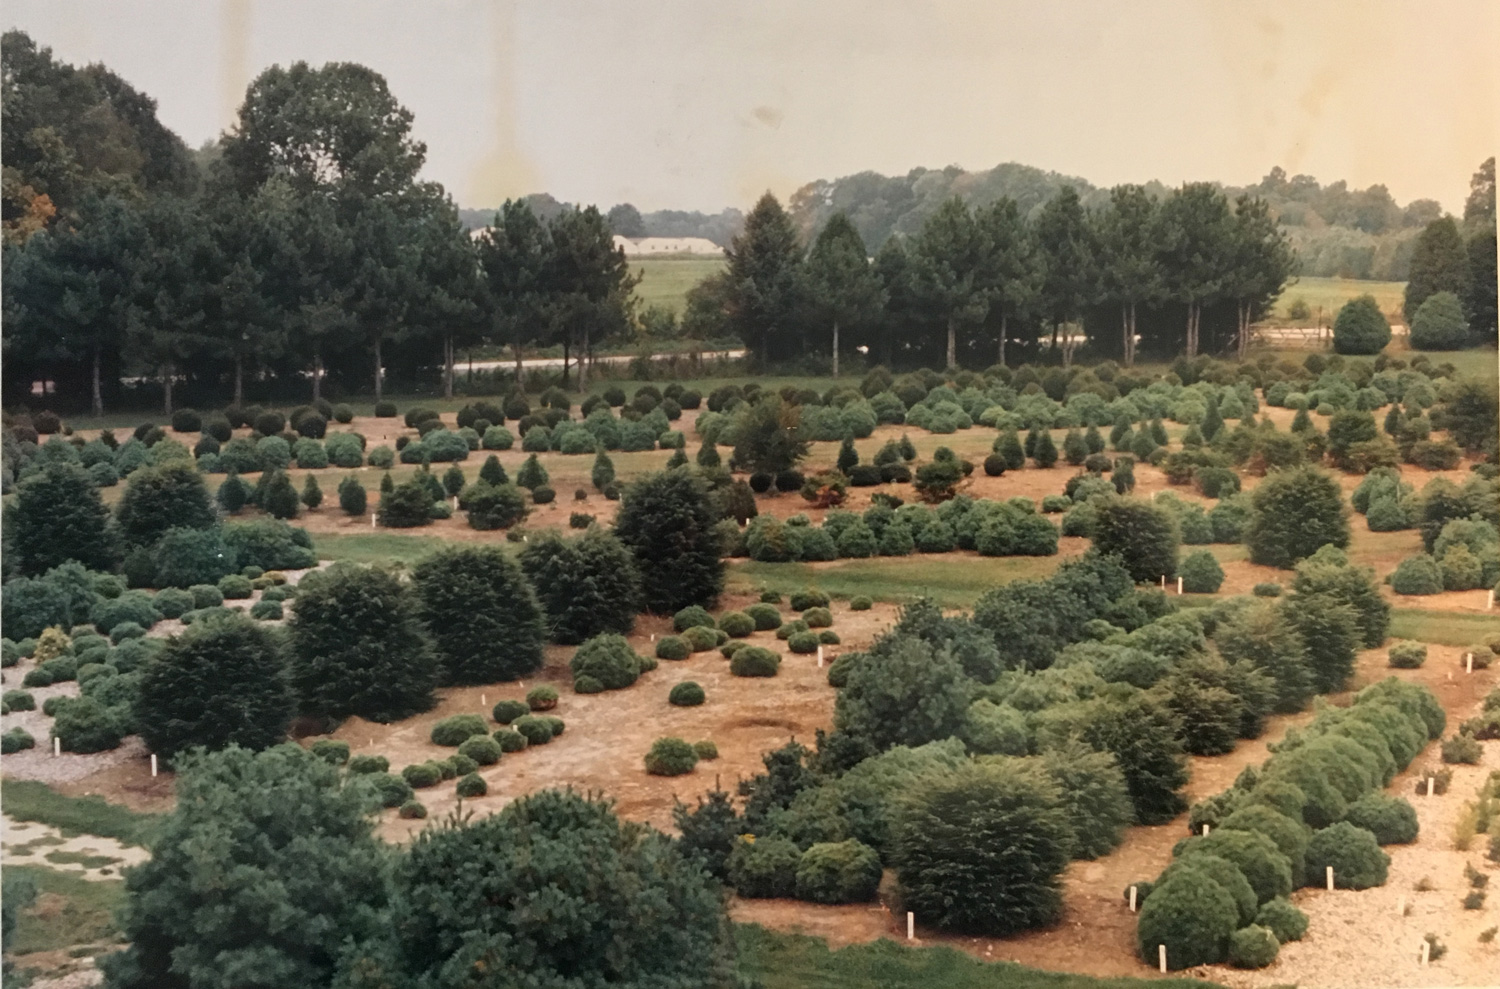 UConn's Conifer Collection hosts hundreds of trees, the fruits of Sidney Waxman's hunts